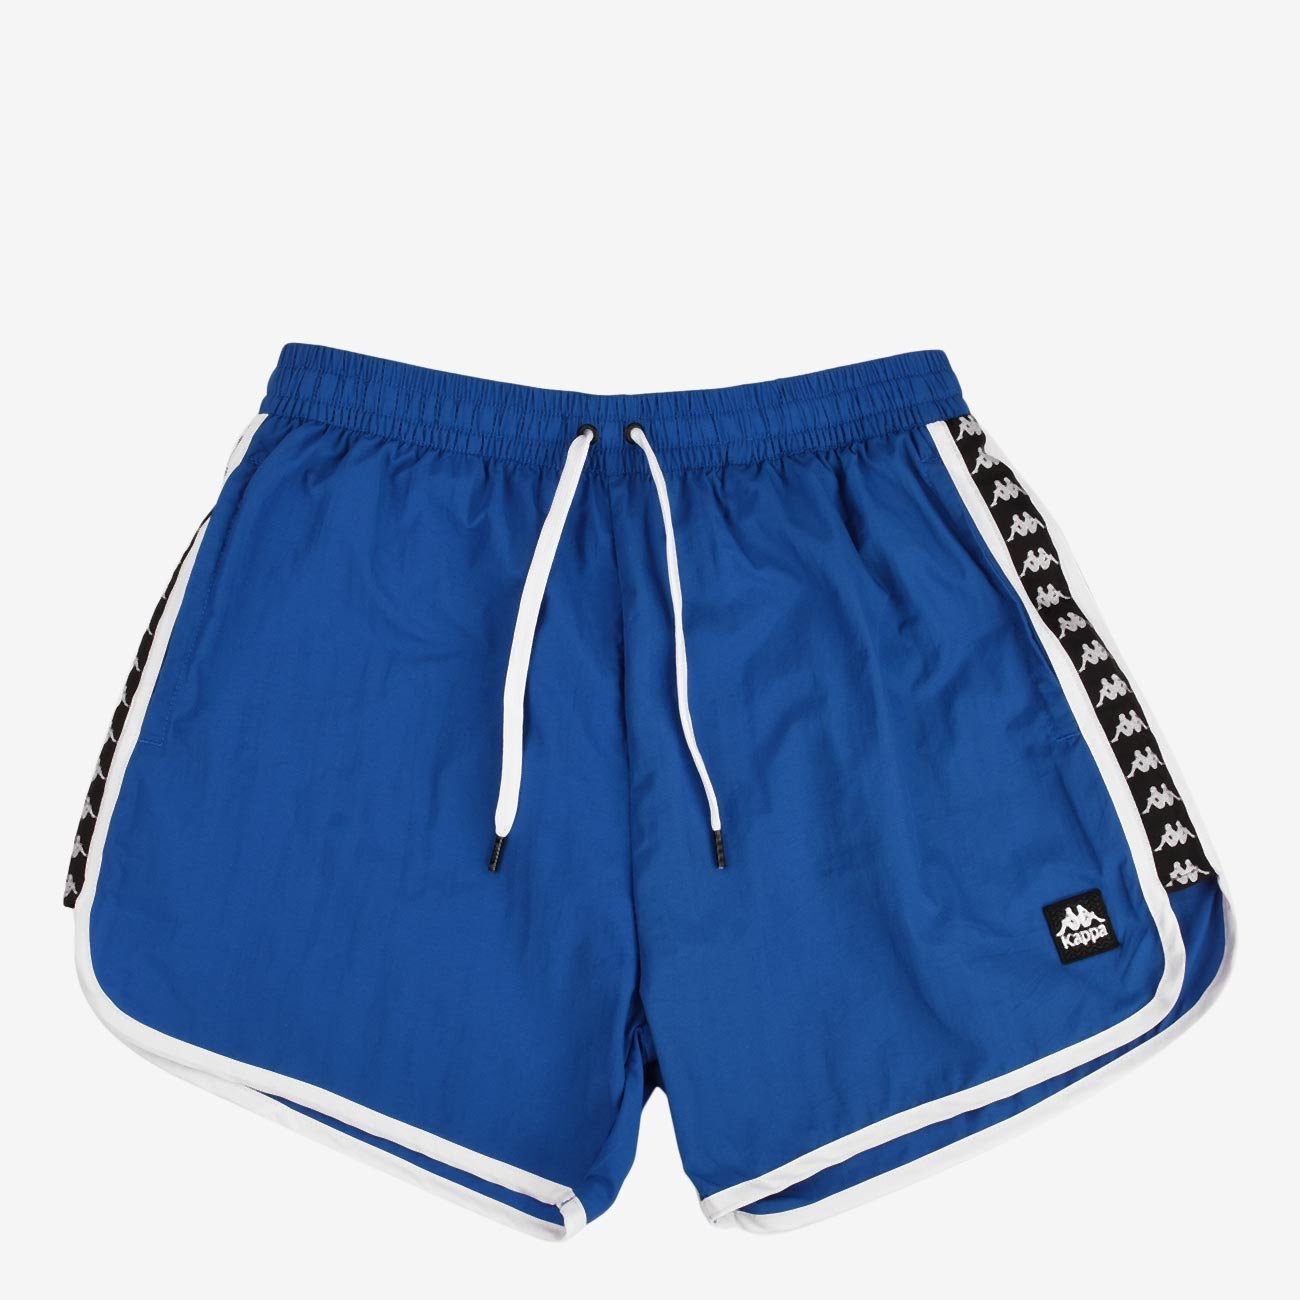 b959fb2caf Kappa AGIUS Auth Swimsuit Short, Men, Men, 303WH90: Amazon.co.uk: Sports &  Outdoors